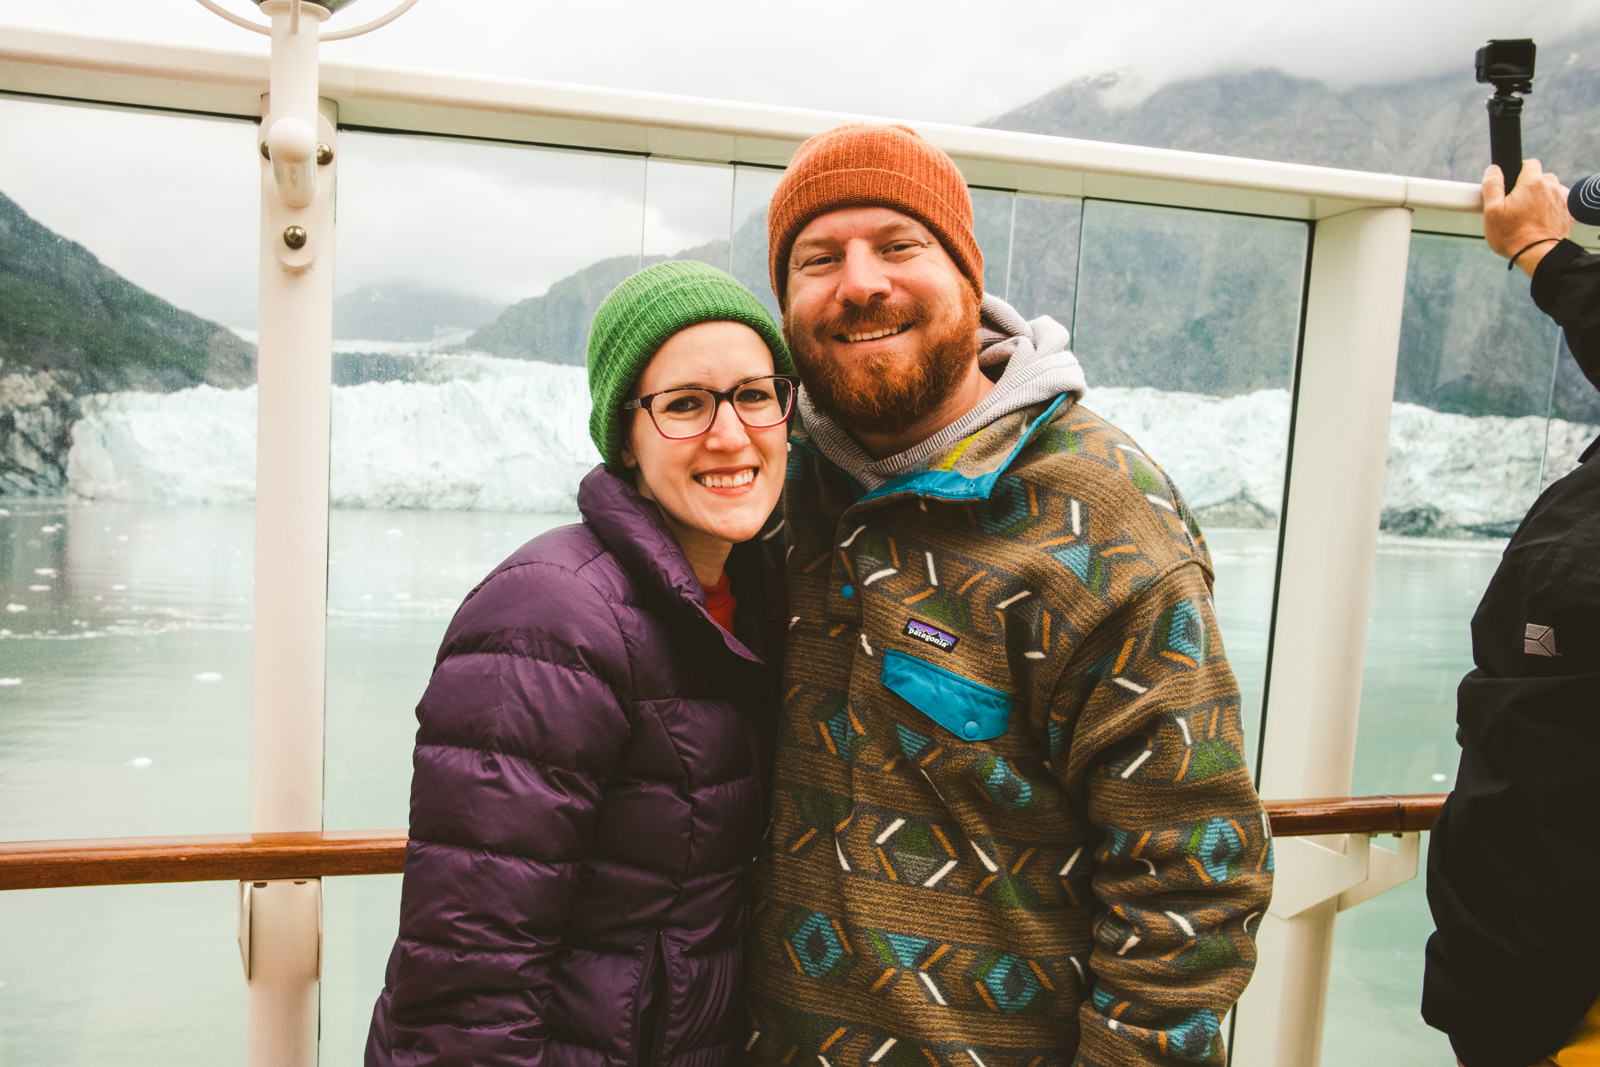 Toledo husband and wife destination photography duo travel to Alaska